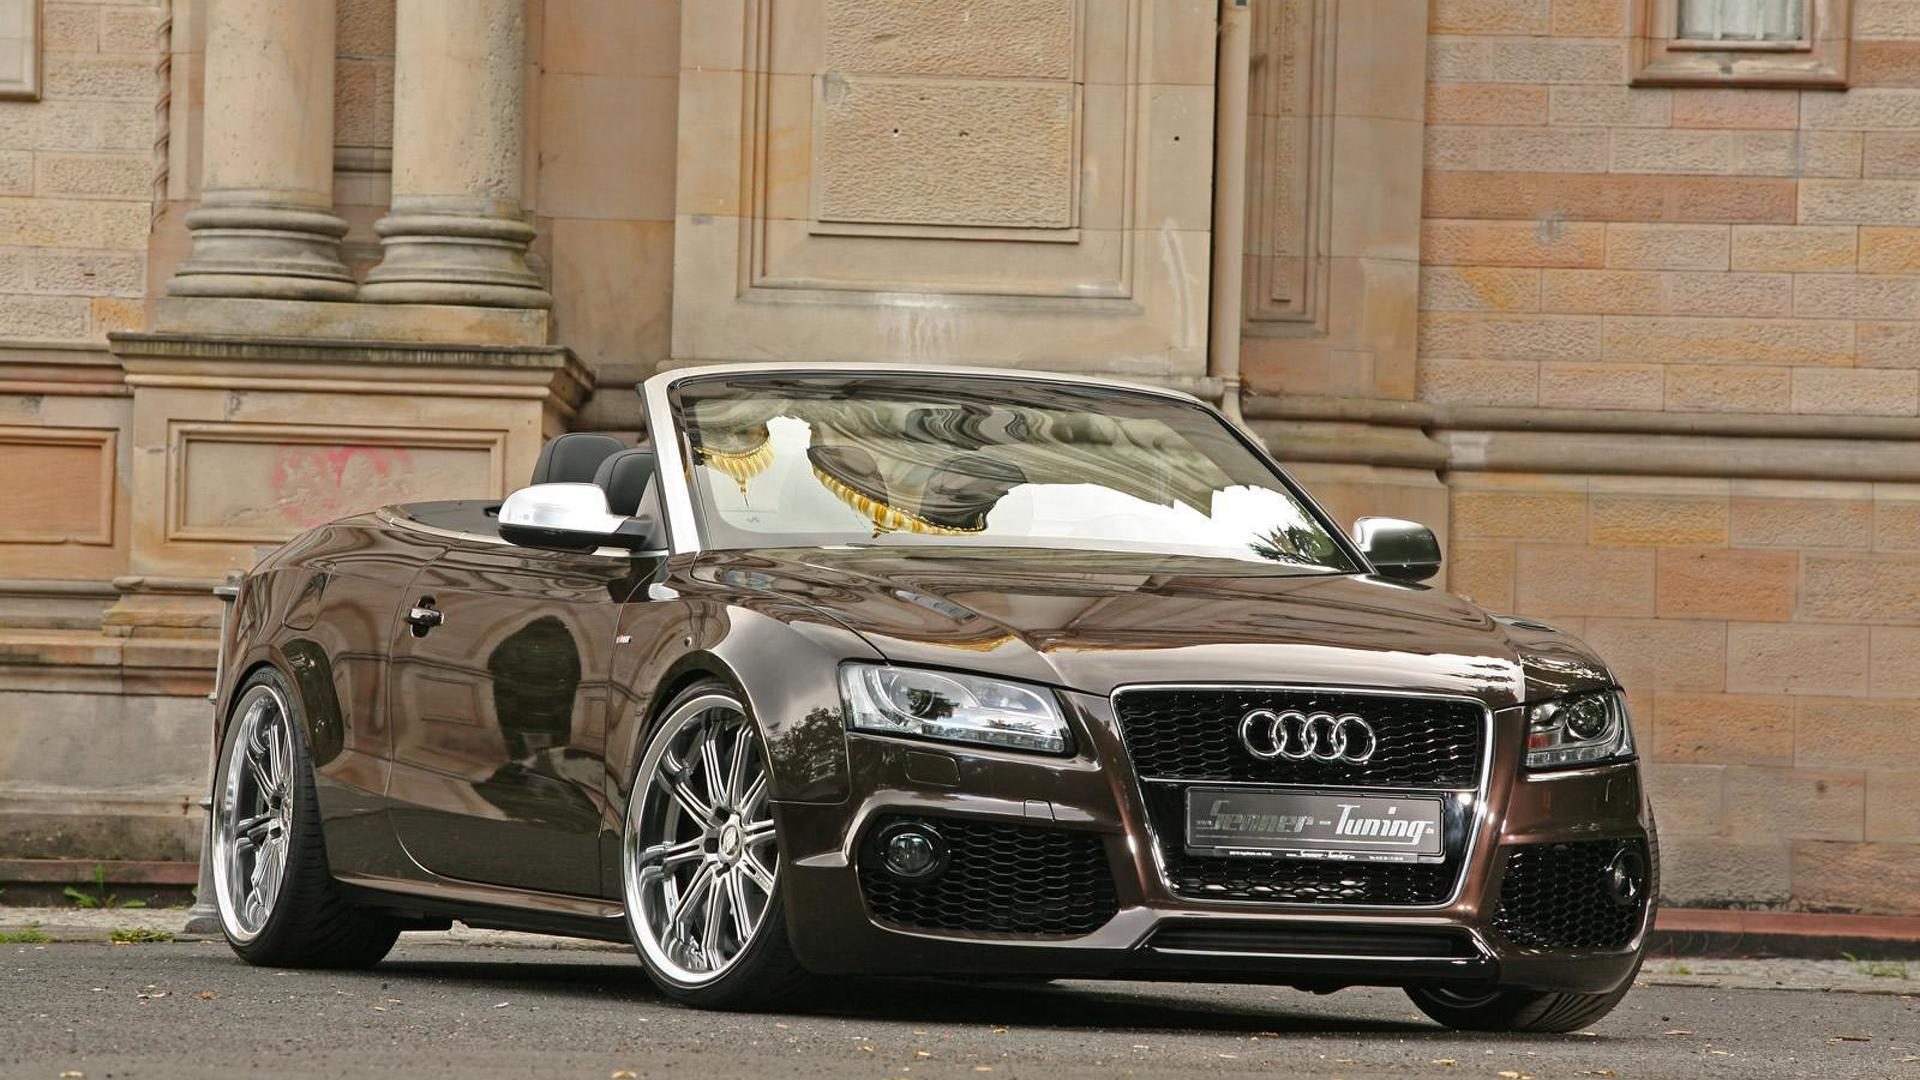 rs bodykit for audi a5 cabrio by senner tuning. Black Bedroom Furniture Sets. Home Design Ideas